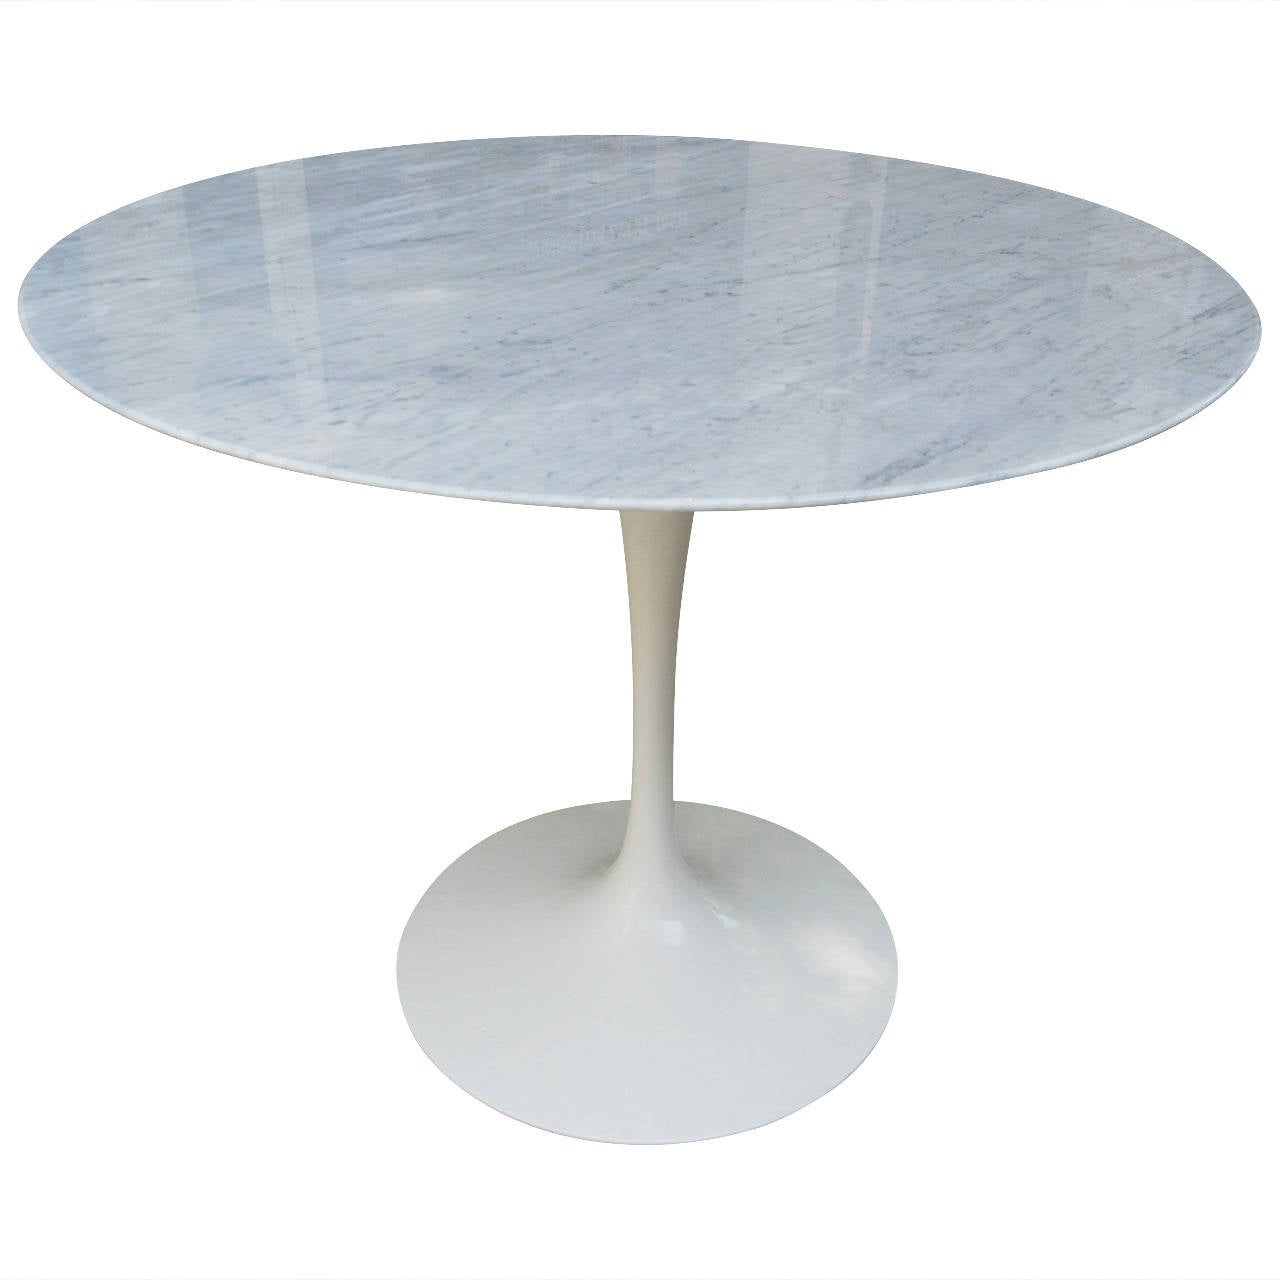 36 Tulip Table Eero Saarinen Tulip Dining Table In Marble At 1stdibs